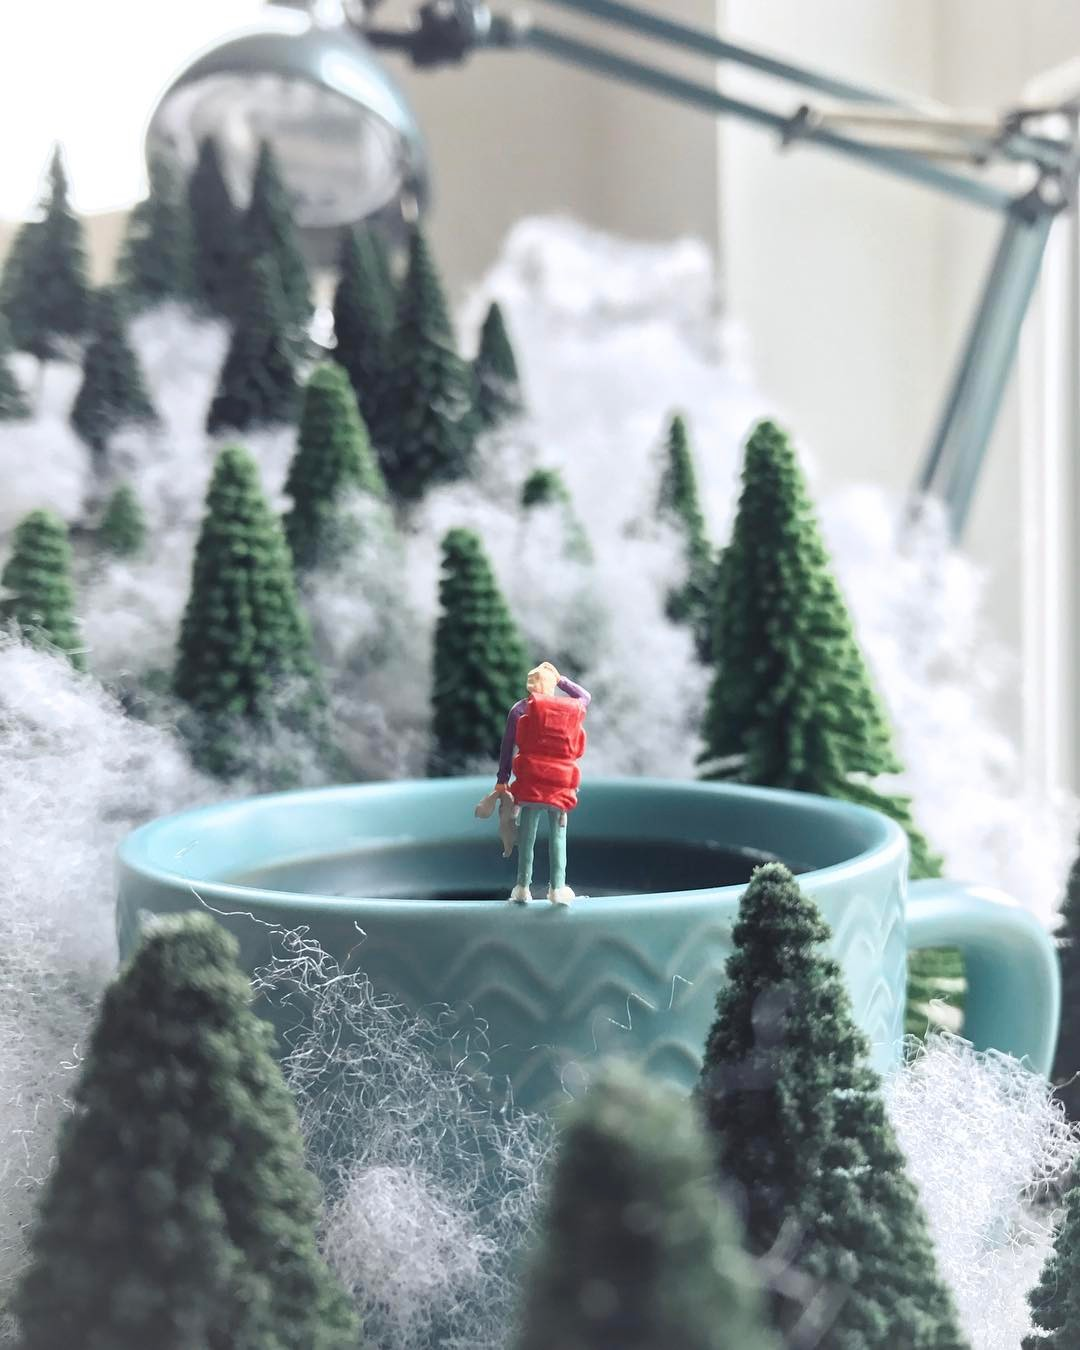 Miniature Scenes Set Amongst Office Supplies by Derrick Lin